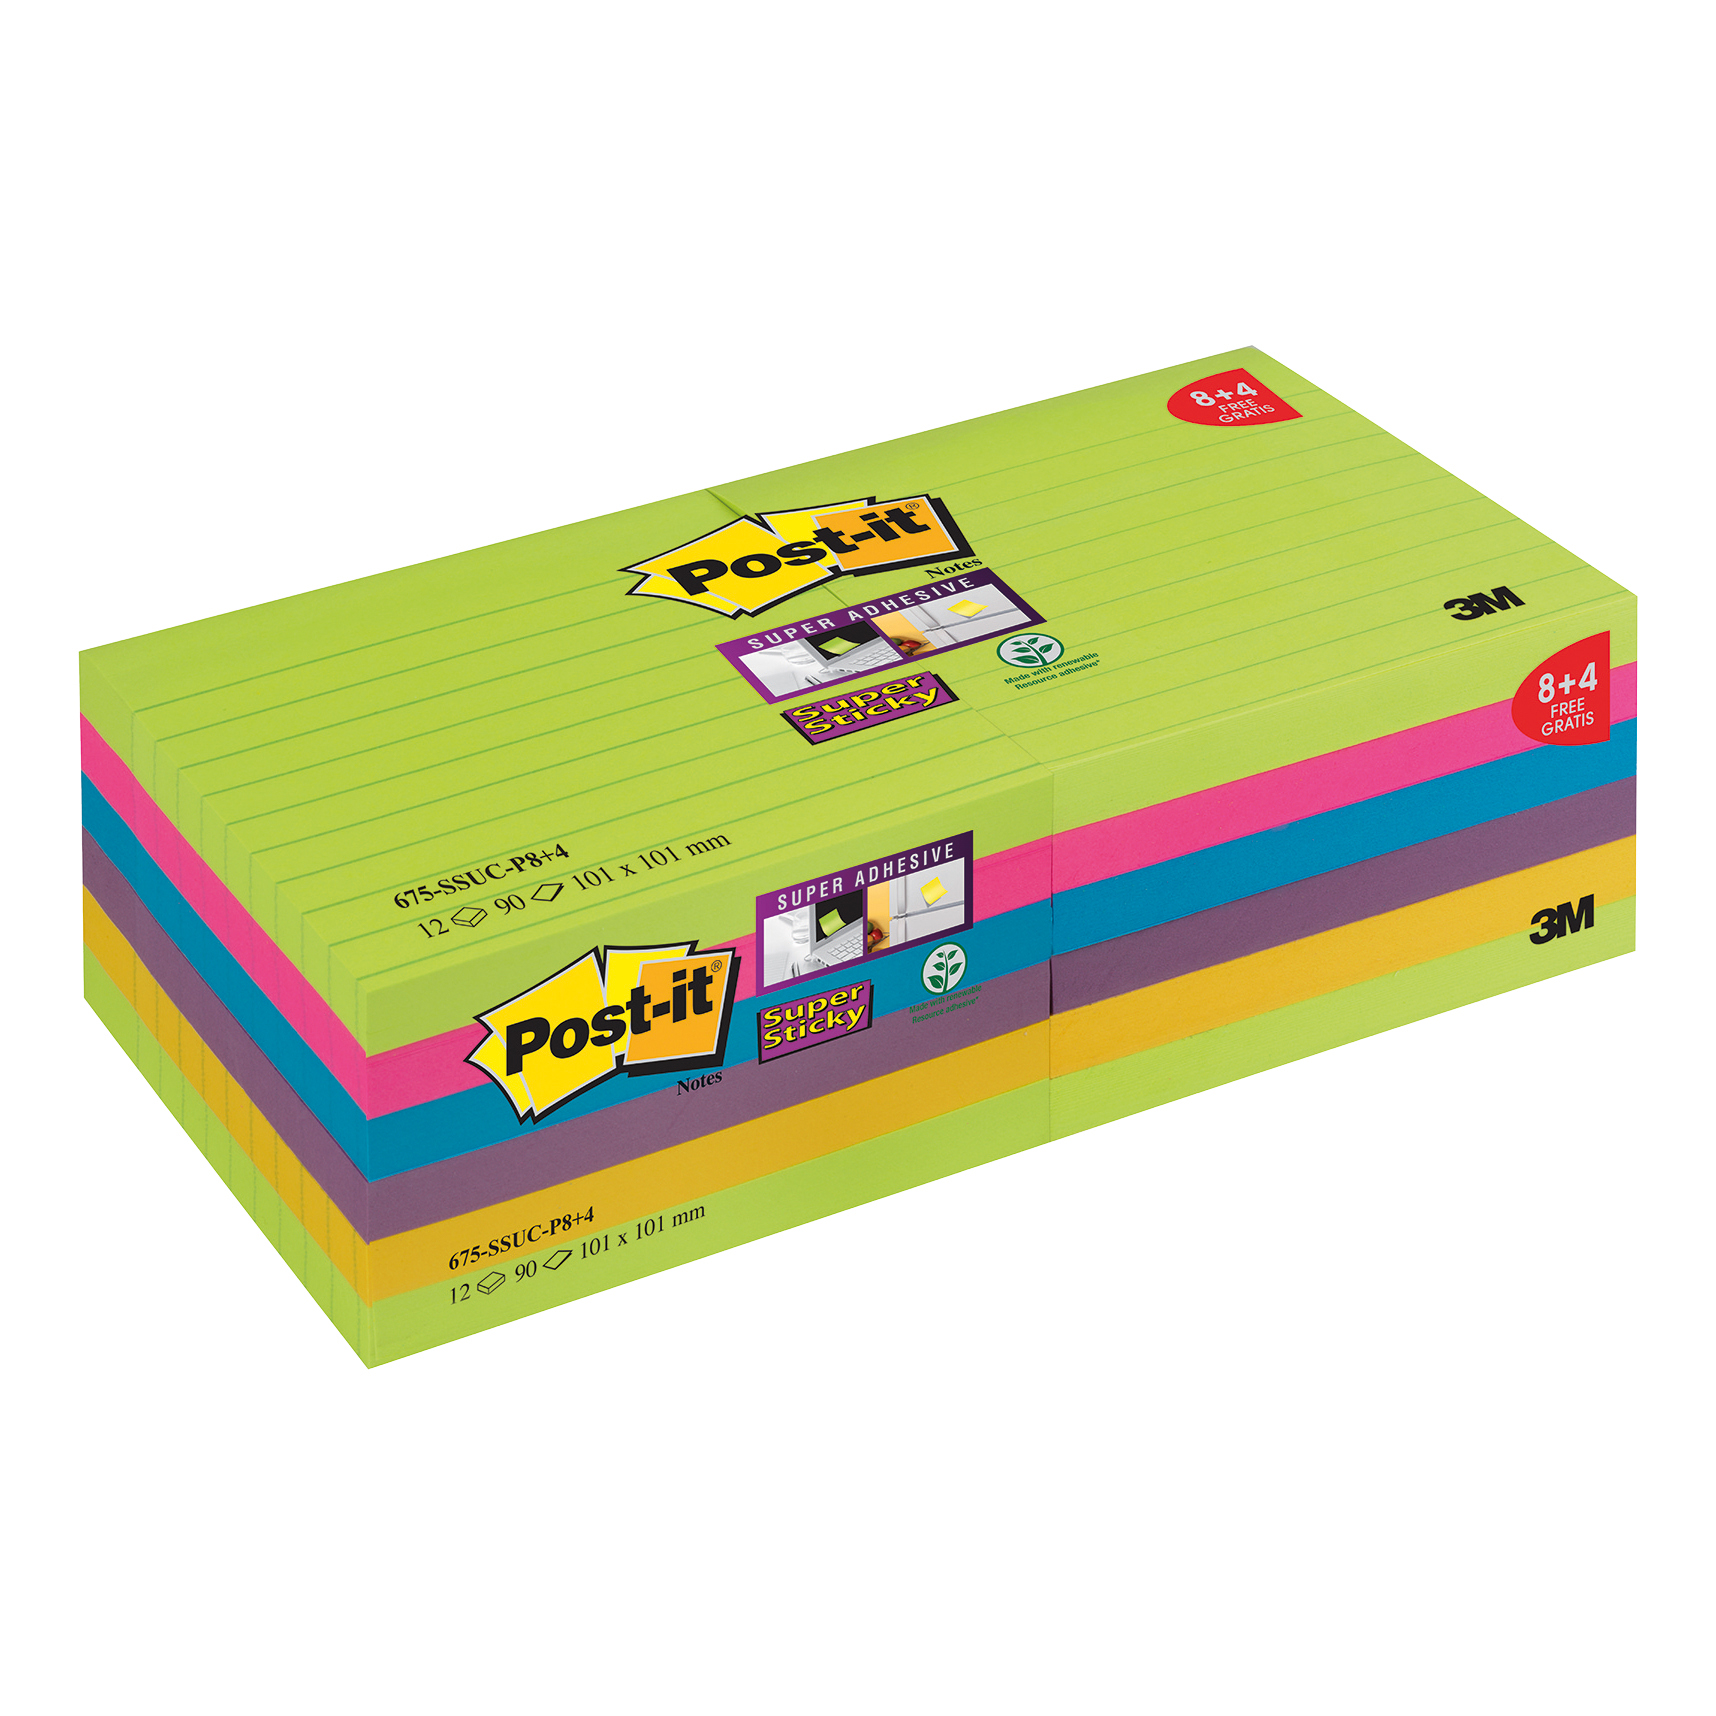 Self adhesive note paper Post-it Super Sticky XL 100x100 90 Sheets Rainbow Ref 675-SSUC-P8 Pack 8 + 4 Free